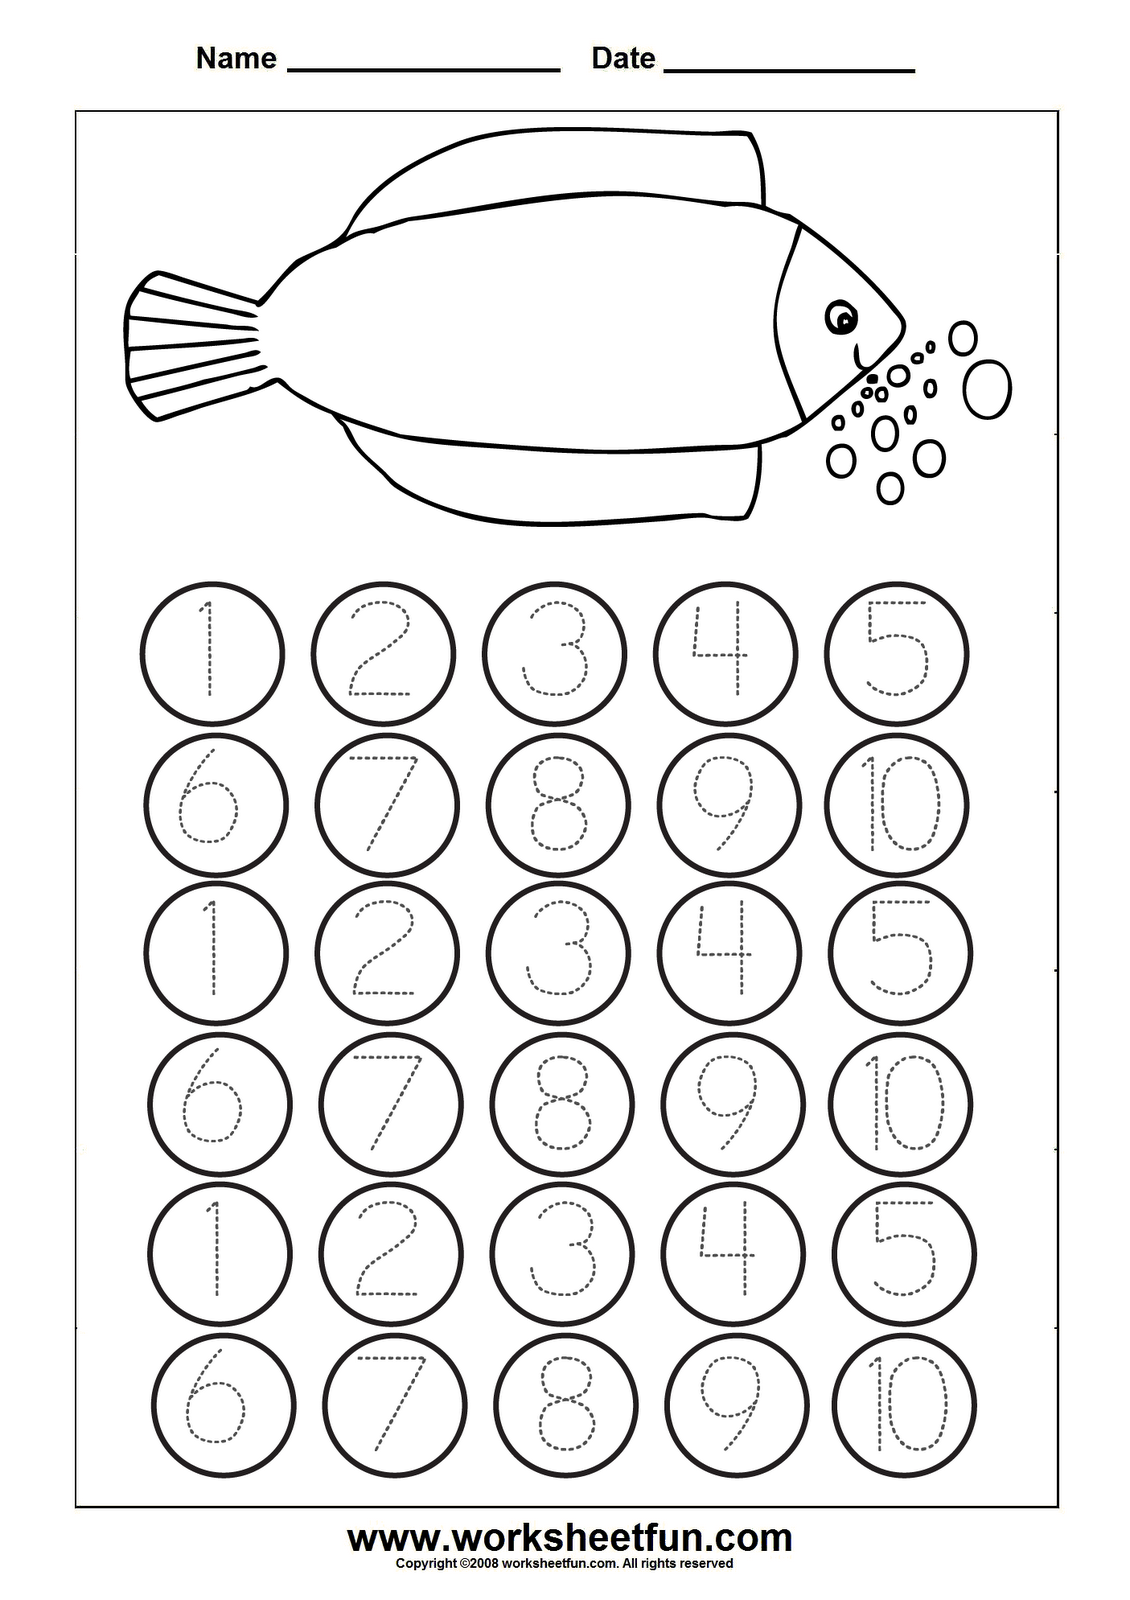 Worksheet 13241937 Kindergarten Number Worksheets 110 Number – Kindergarten Numbers Worksheets